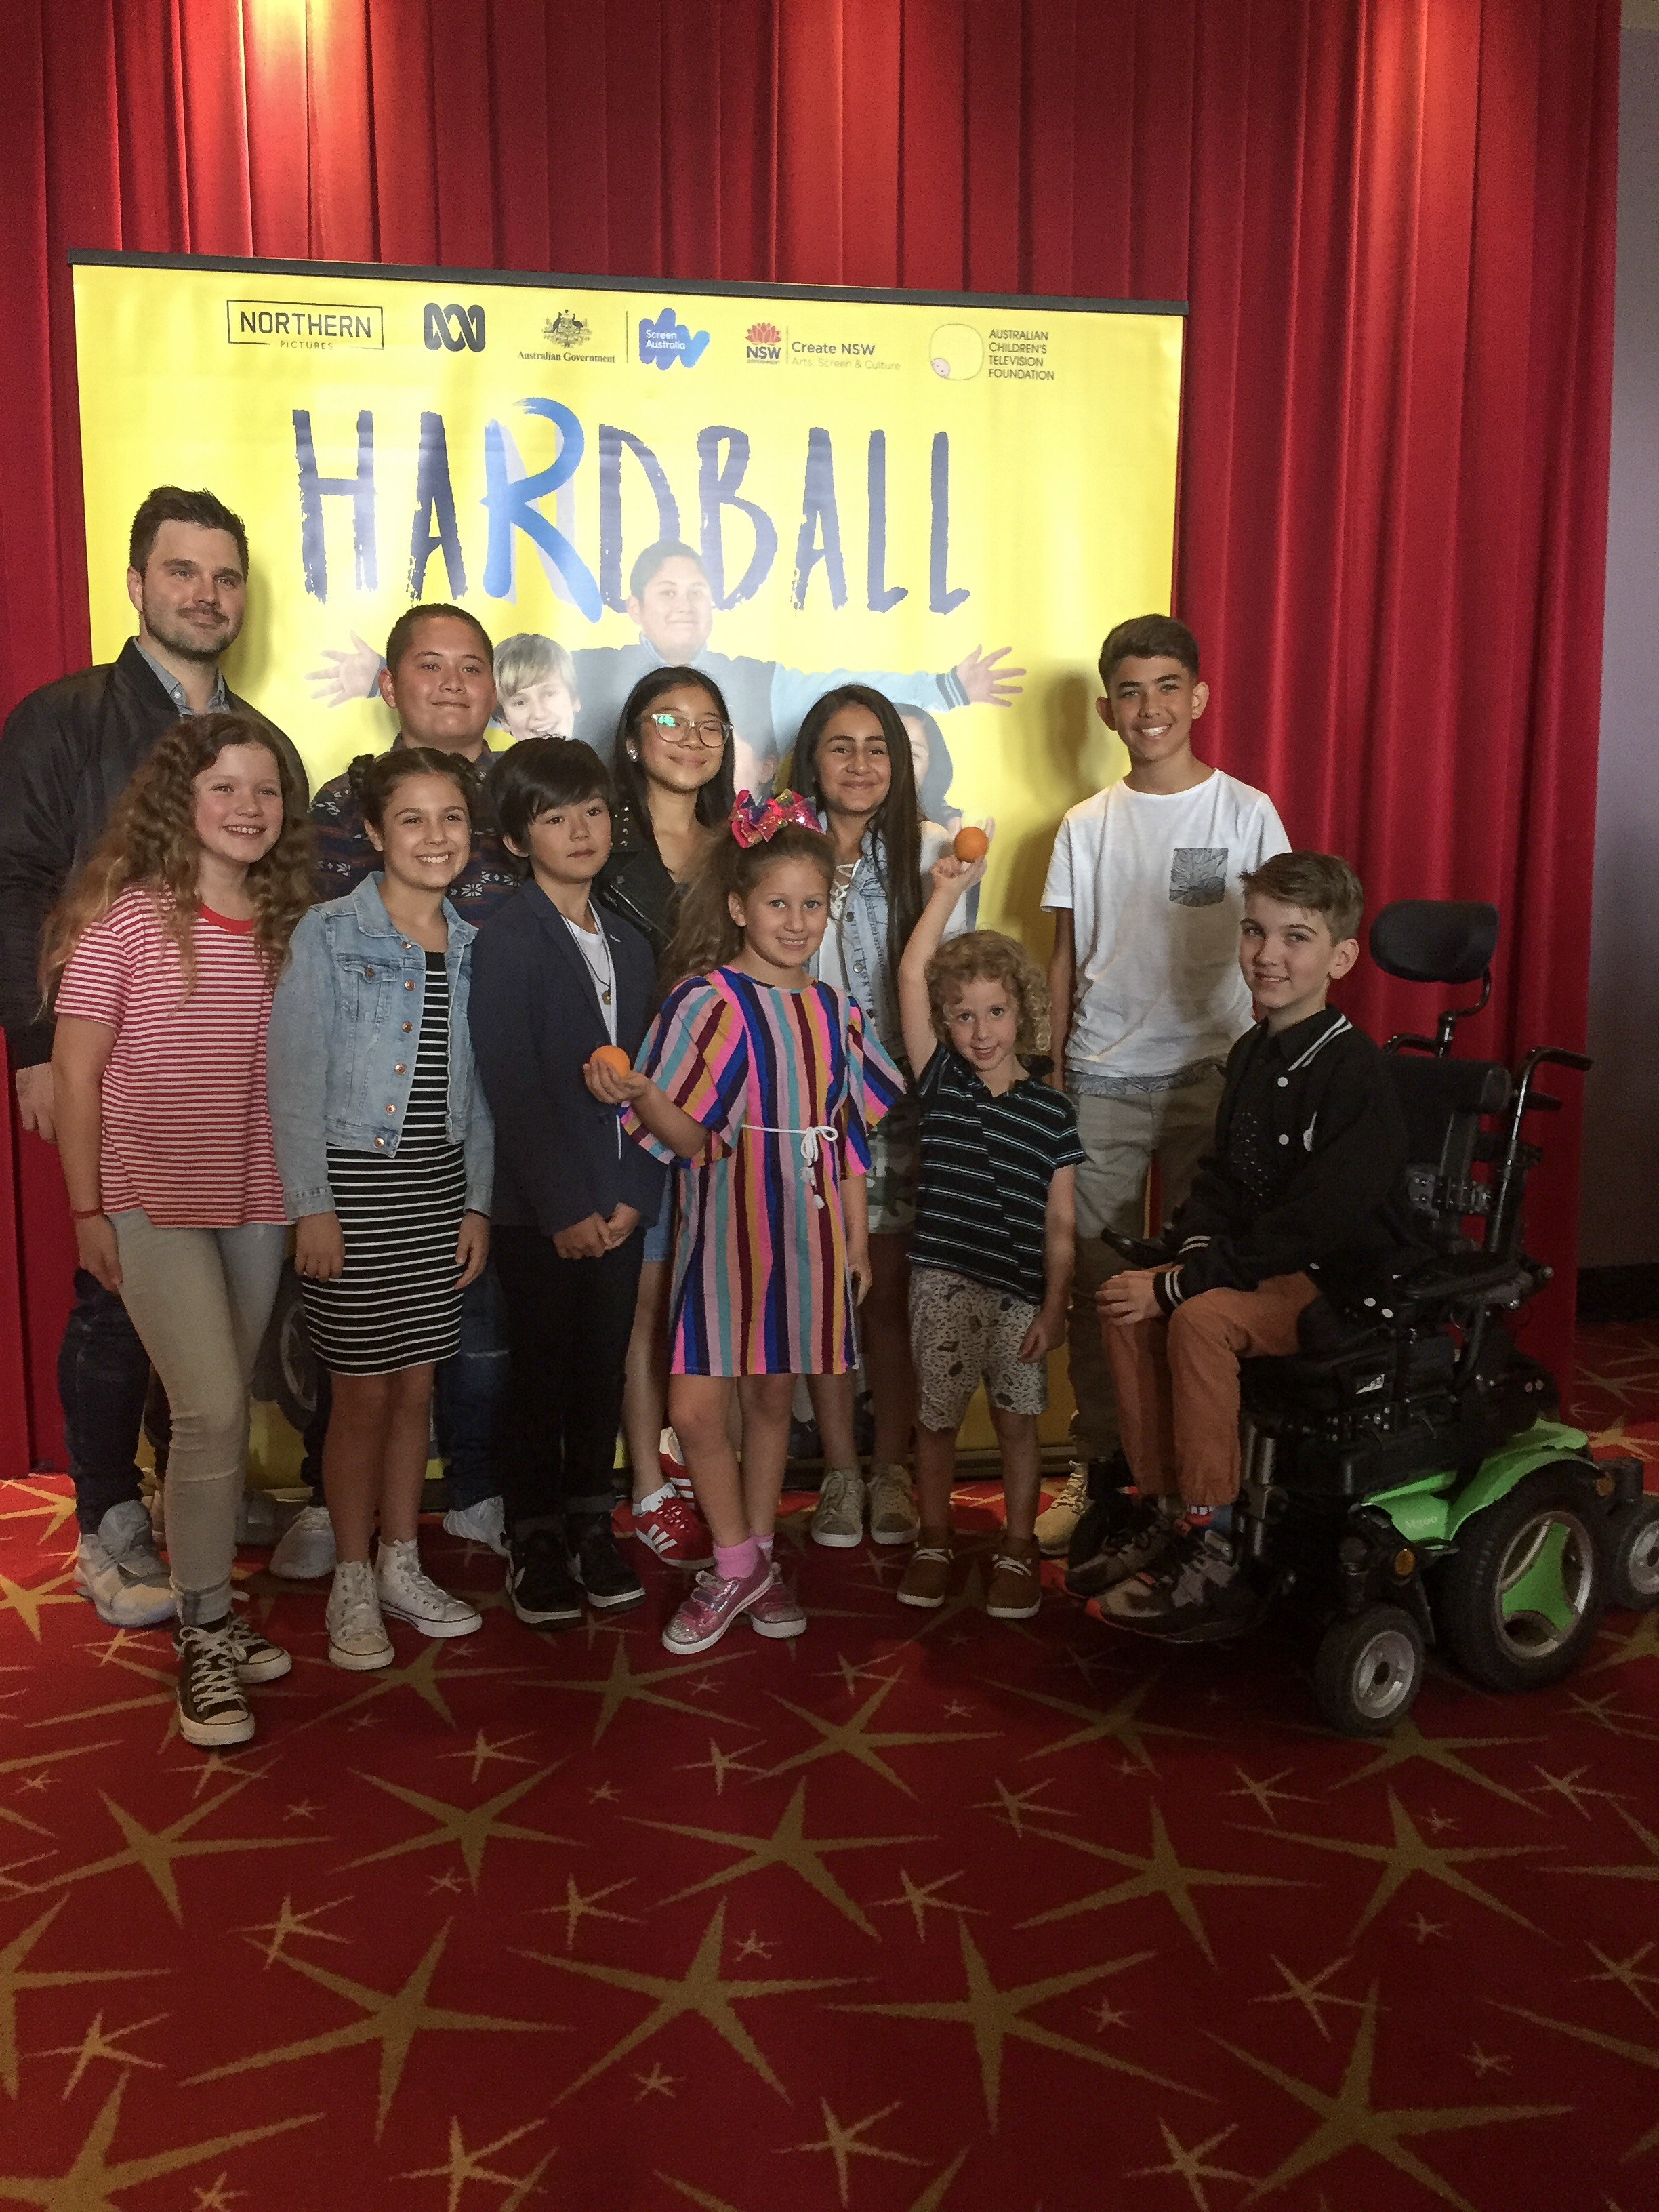 Denny and Noah posing with the cast of Hardball